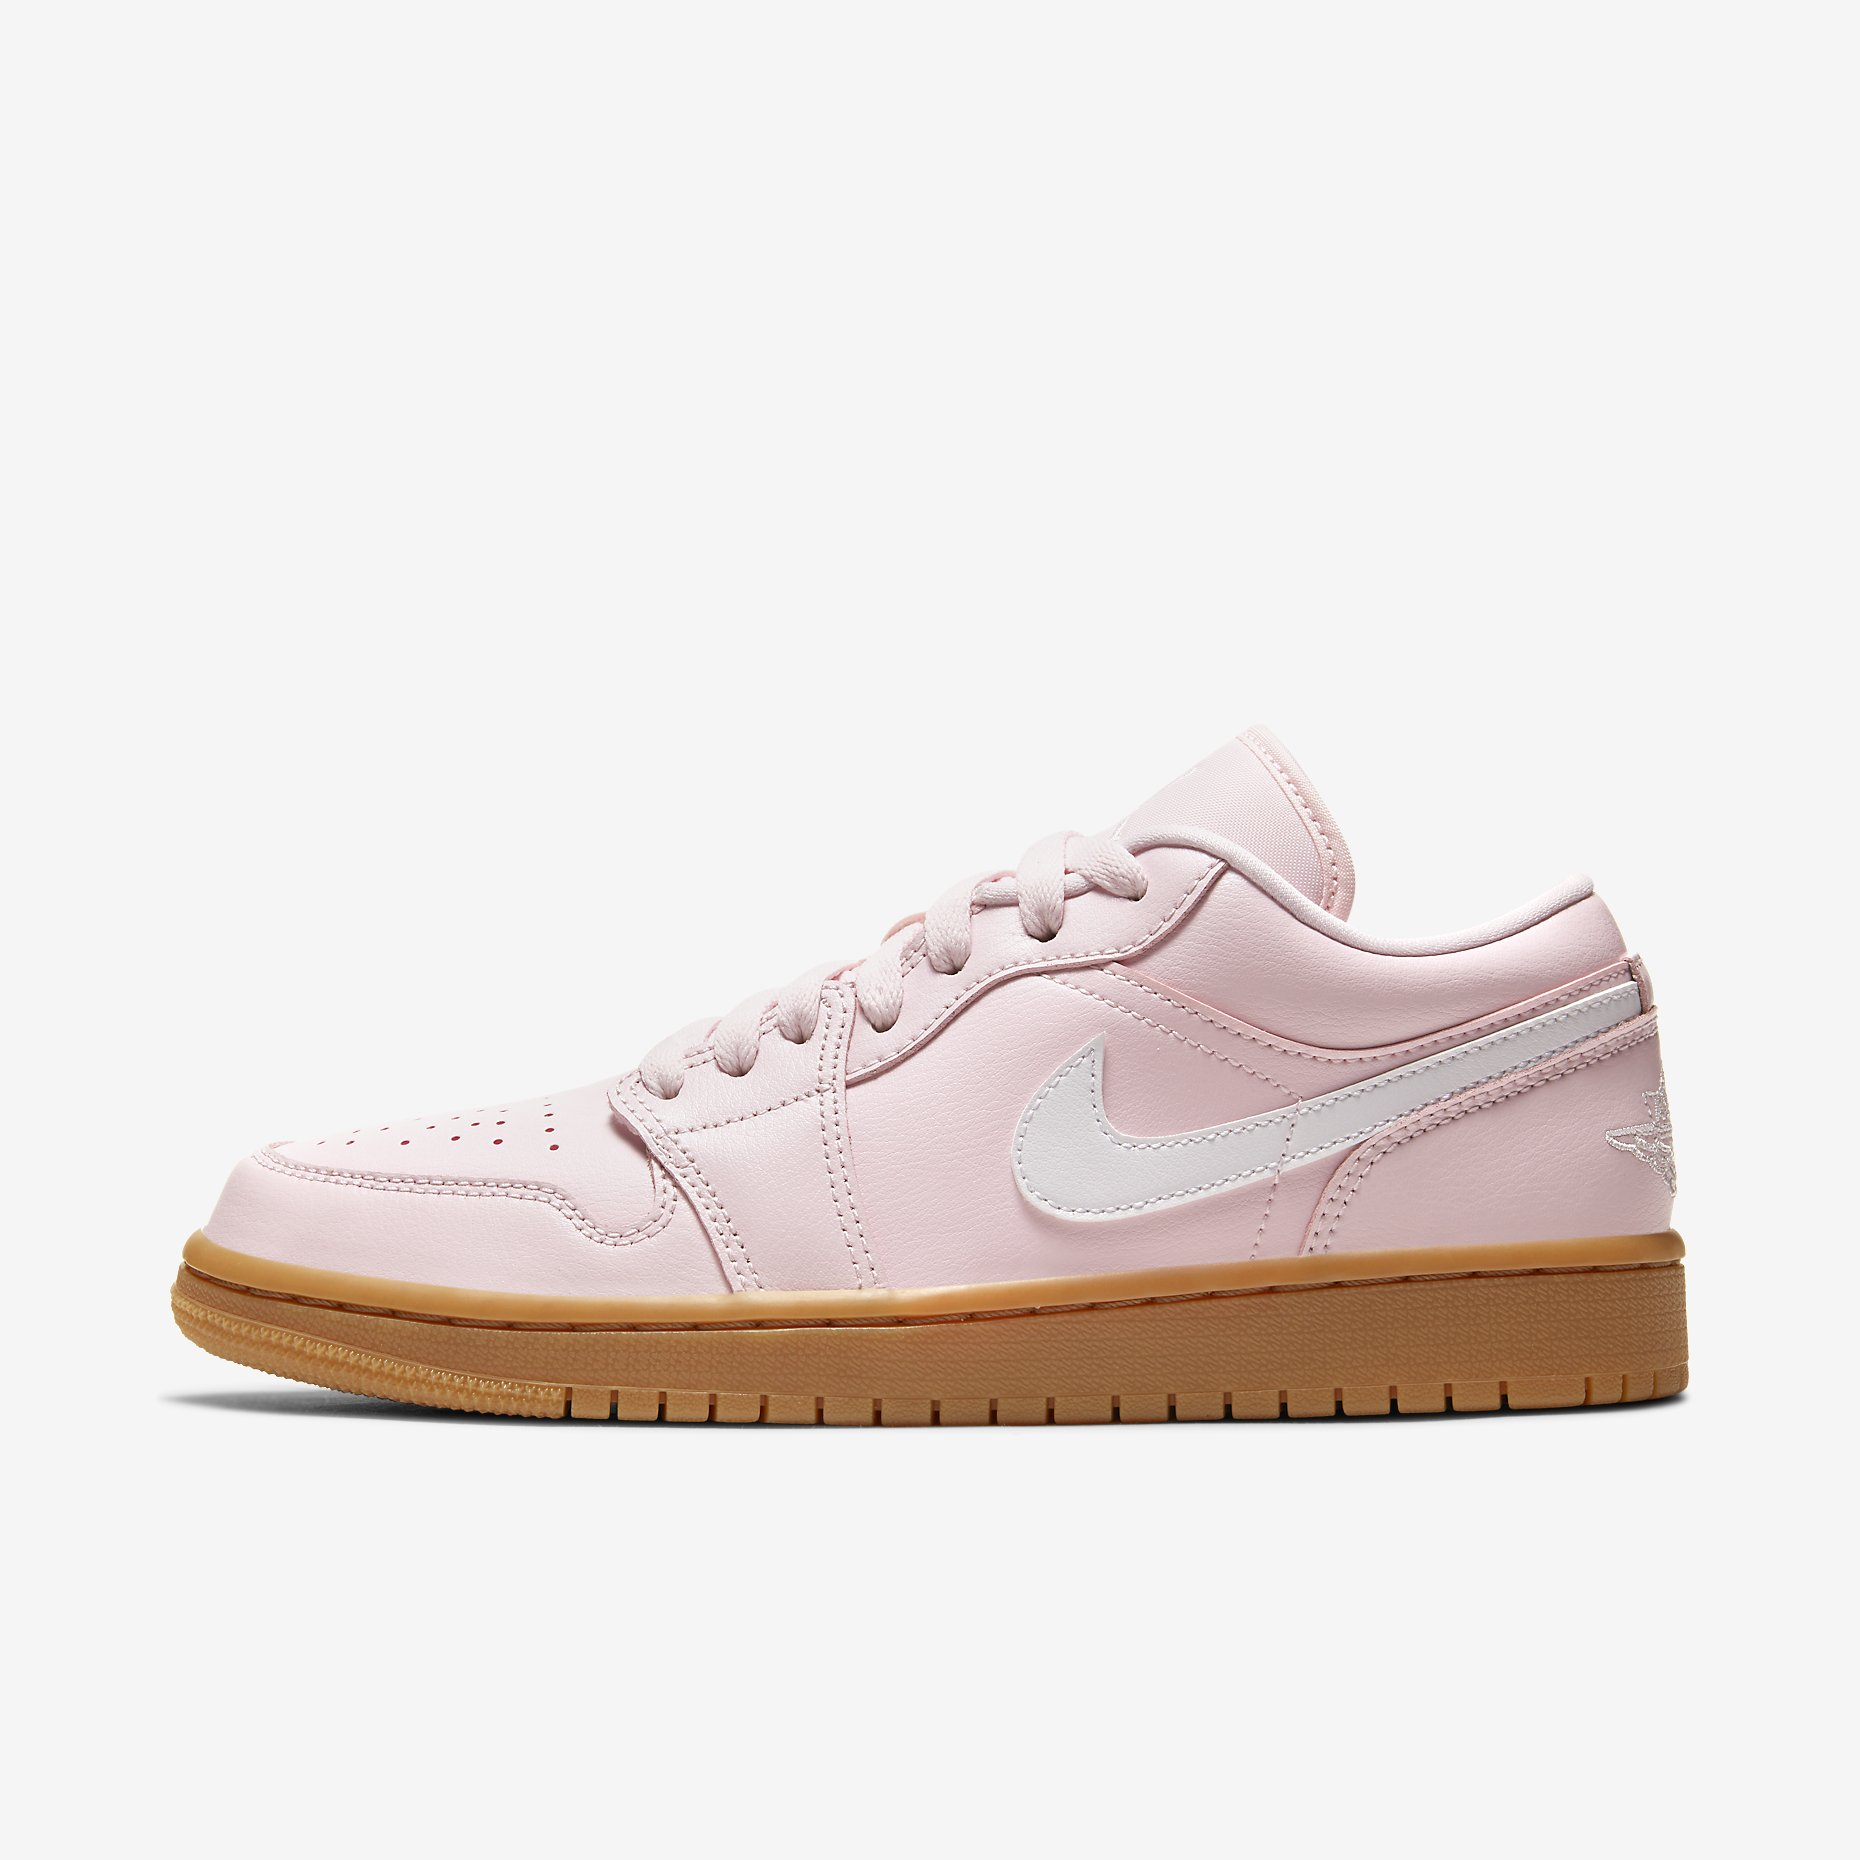 Women's Air Jordan 1 Low 'Arctic Pink Gum Light Brown'}